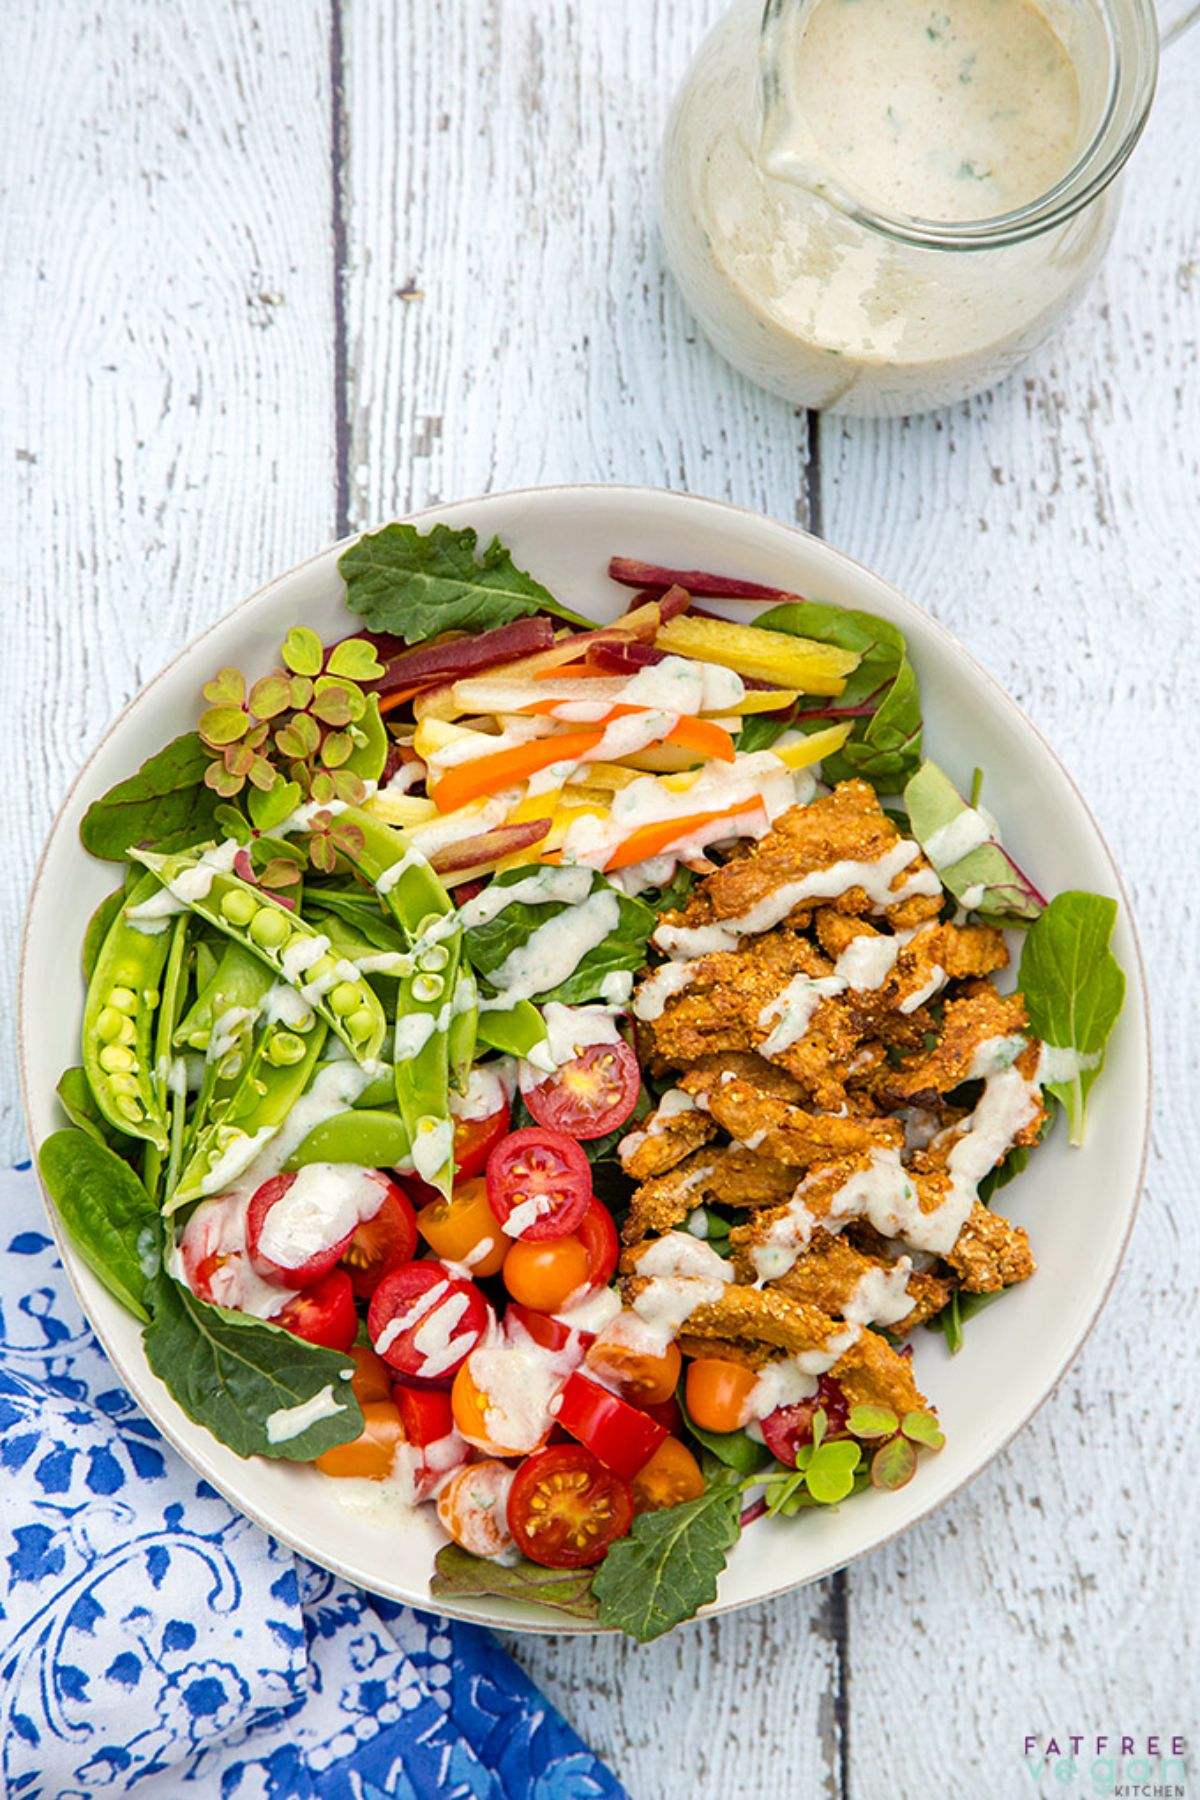 a white dish full of soy curls, green salad, and drizzled with salad dressing.